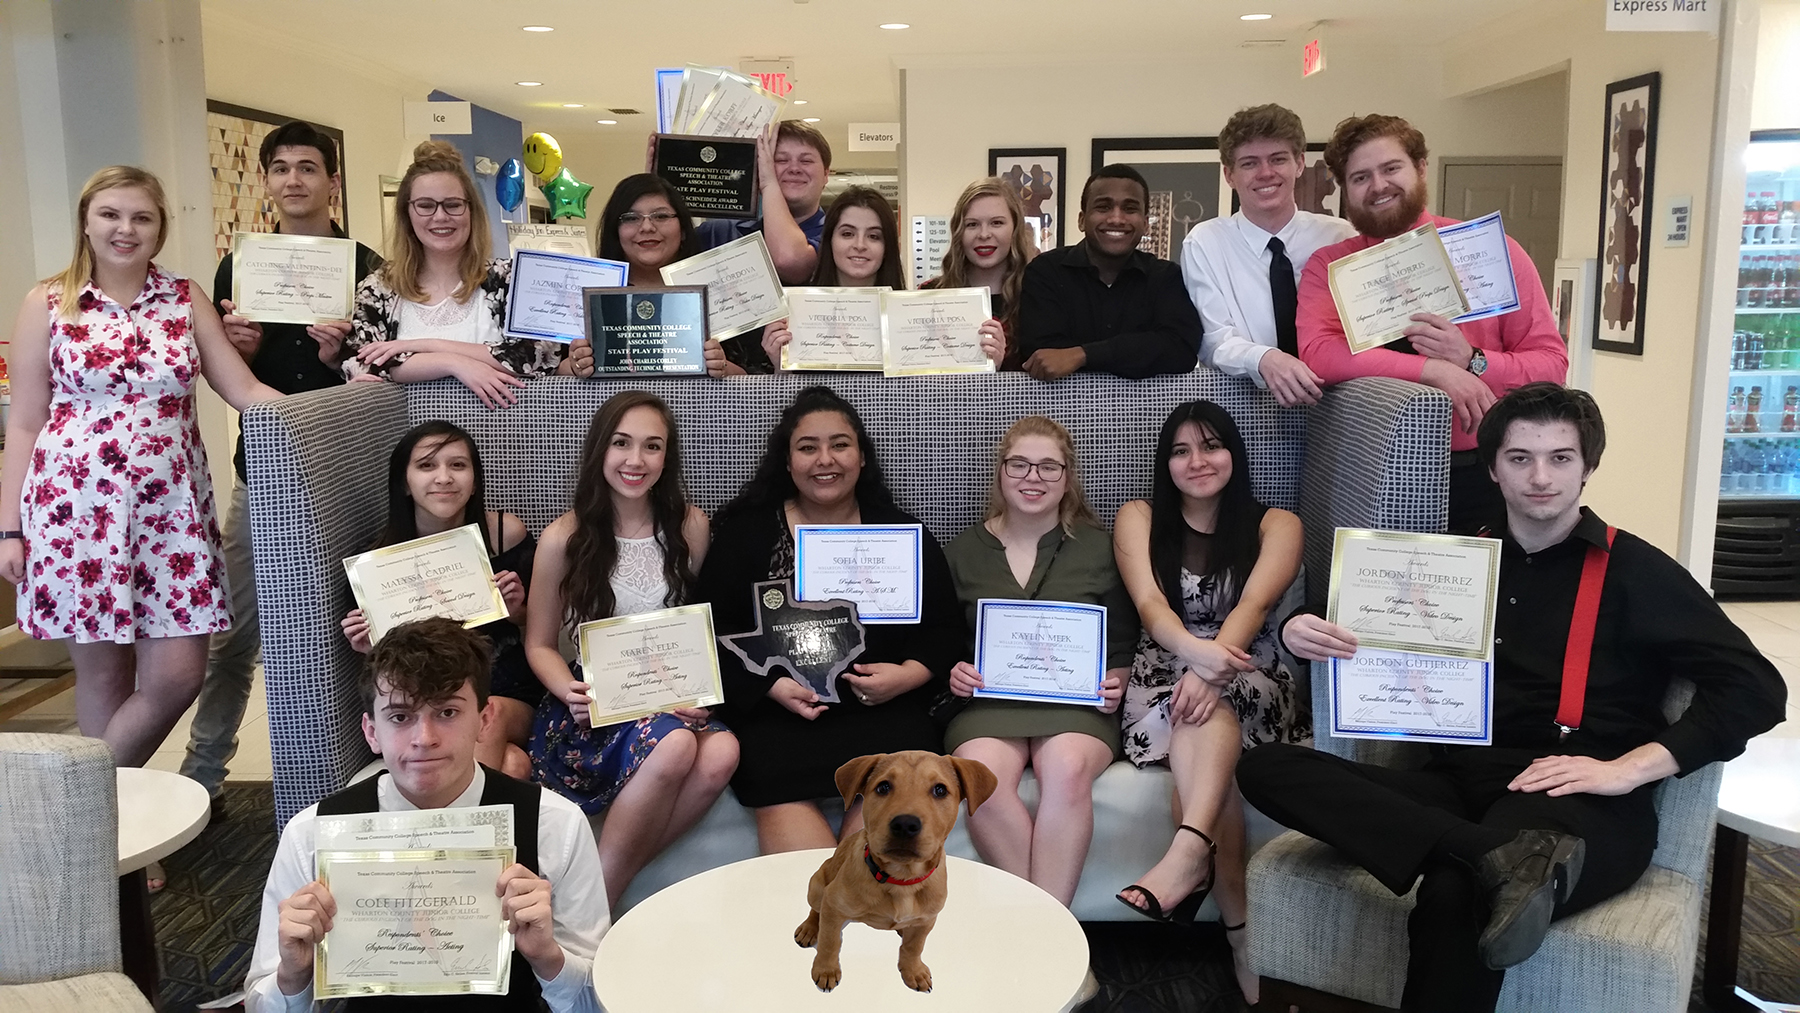 AN IMPRESSIVE PERFORMANCE WCJC Drama students earn 22 awards at play festival